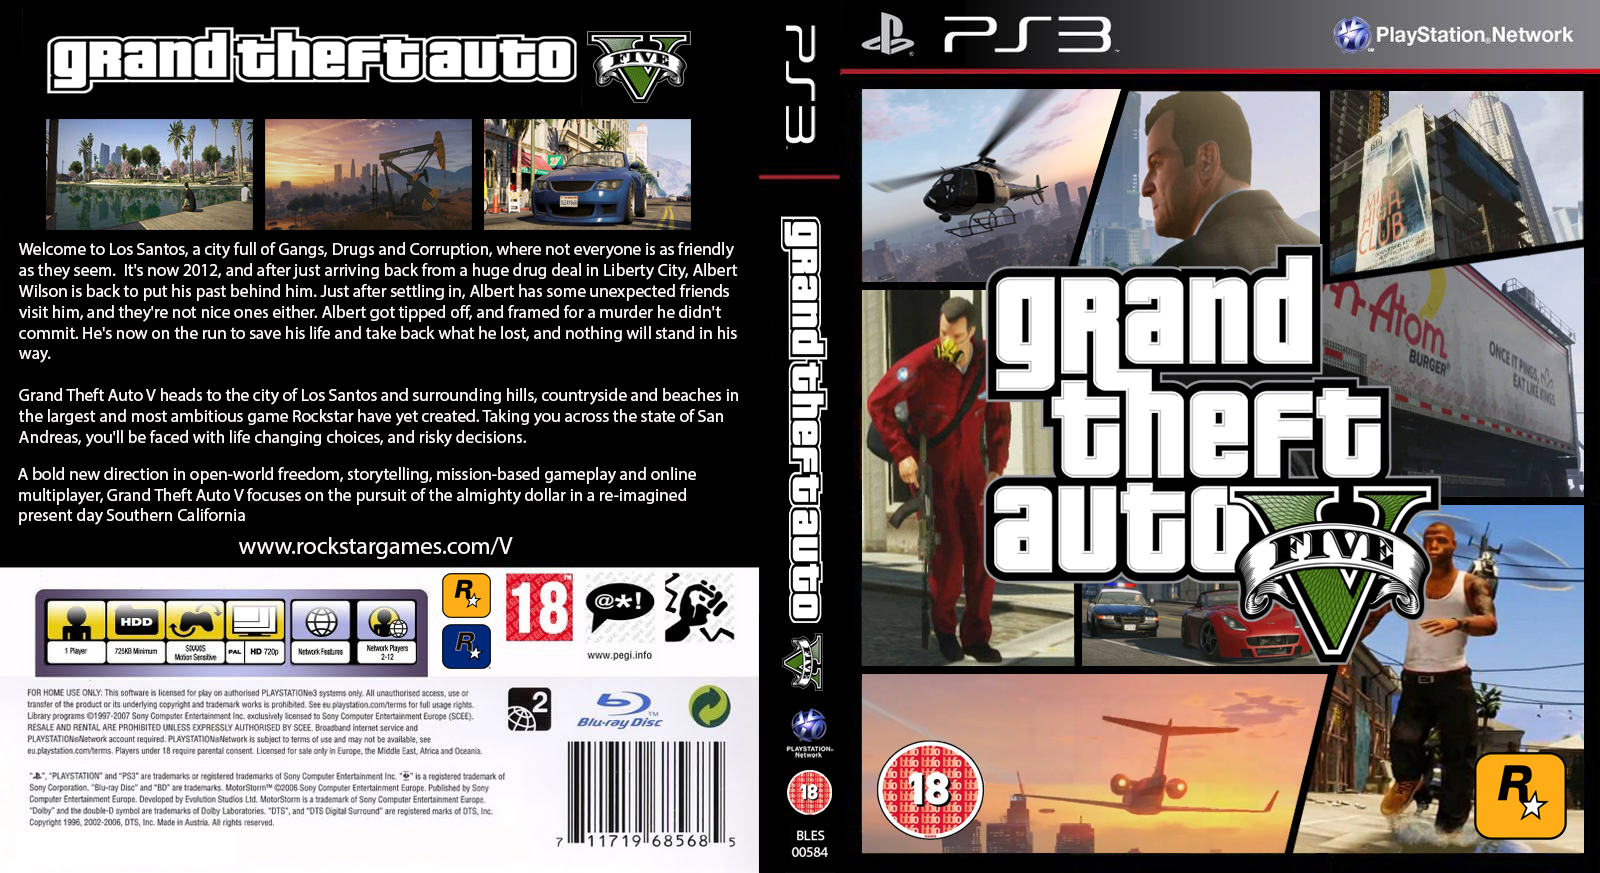 Gta 5 Update 5.01 Pc